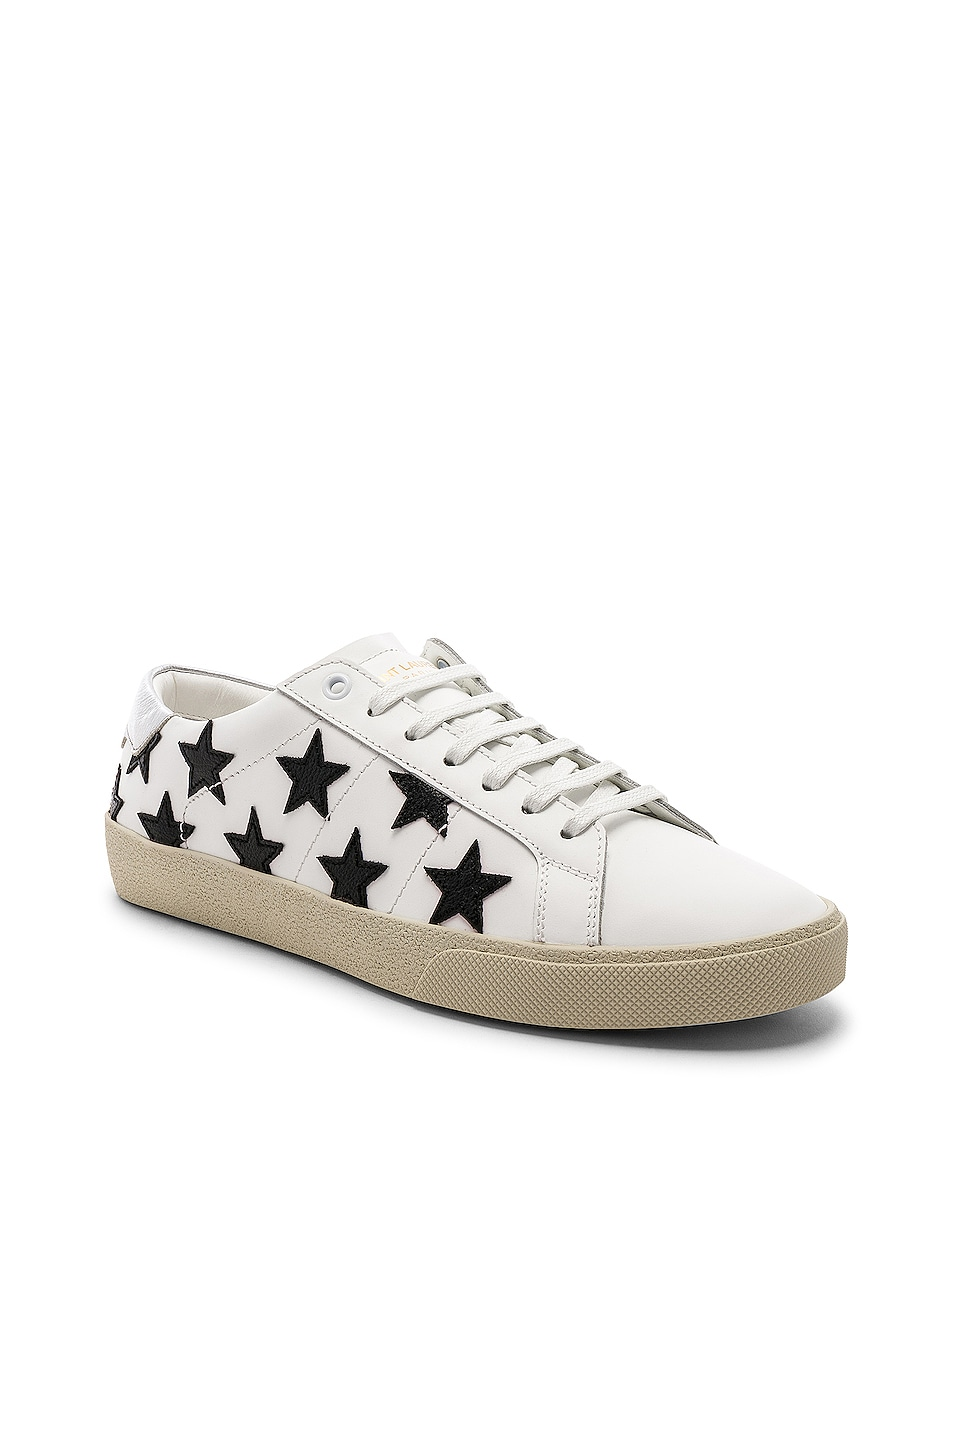 Image 2 of Saint Laurent Leather SL/06 Low-Top Star Sneakers in Optic White & Black & Silver